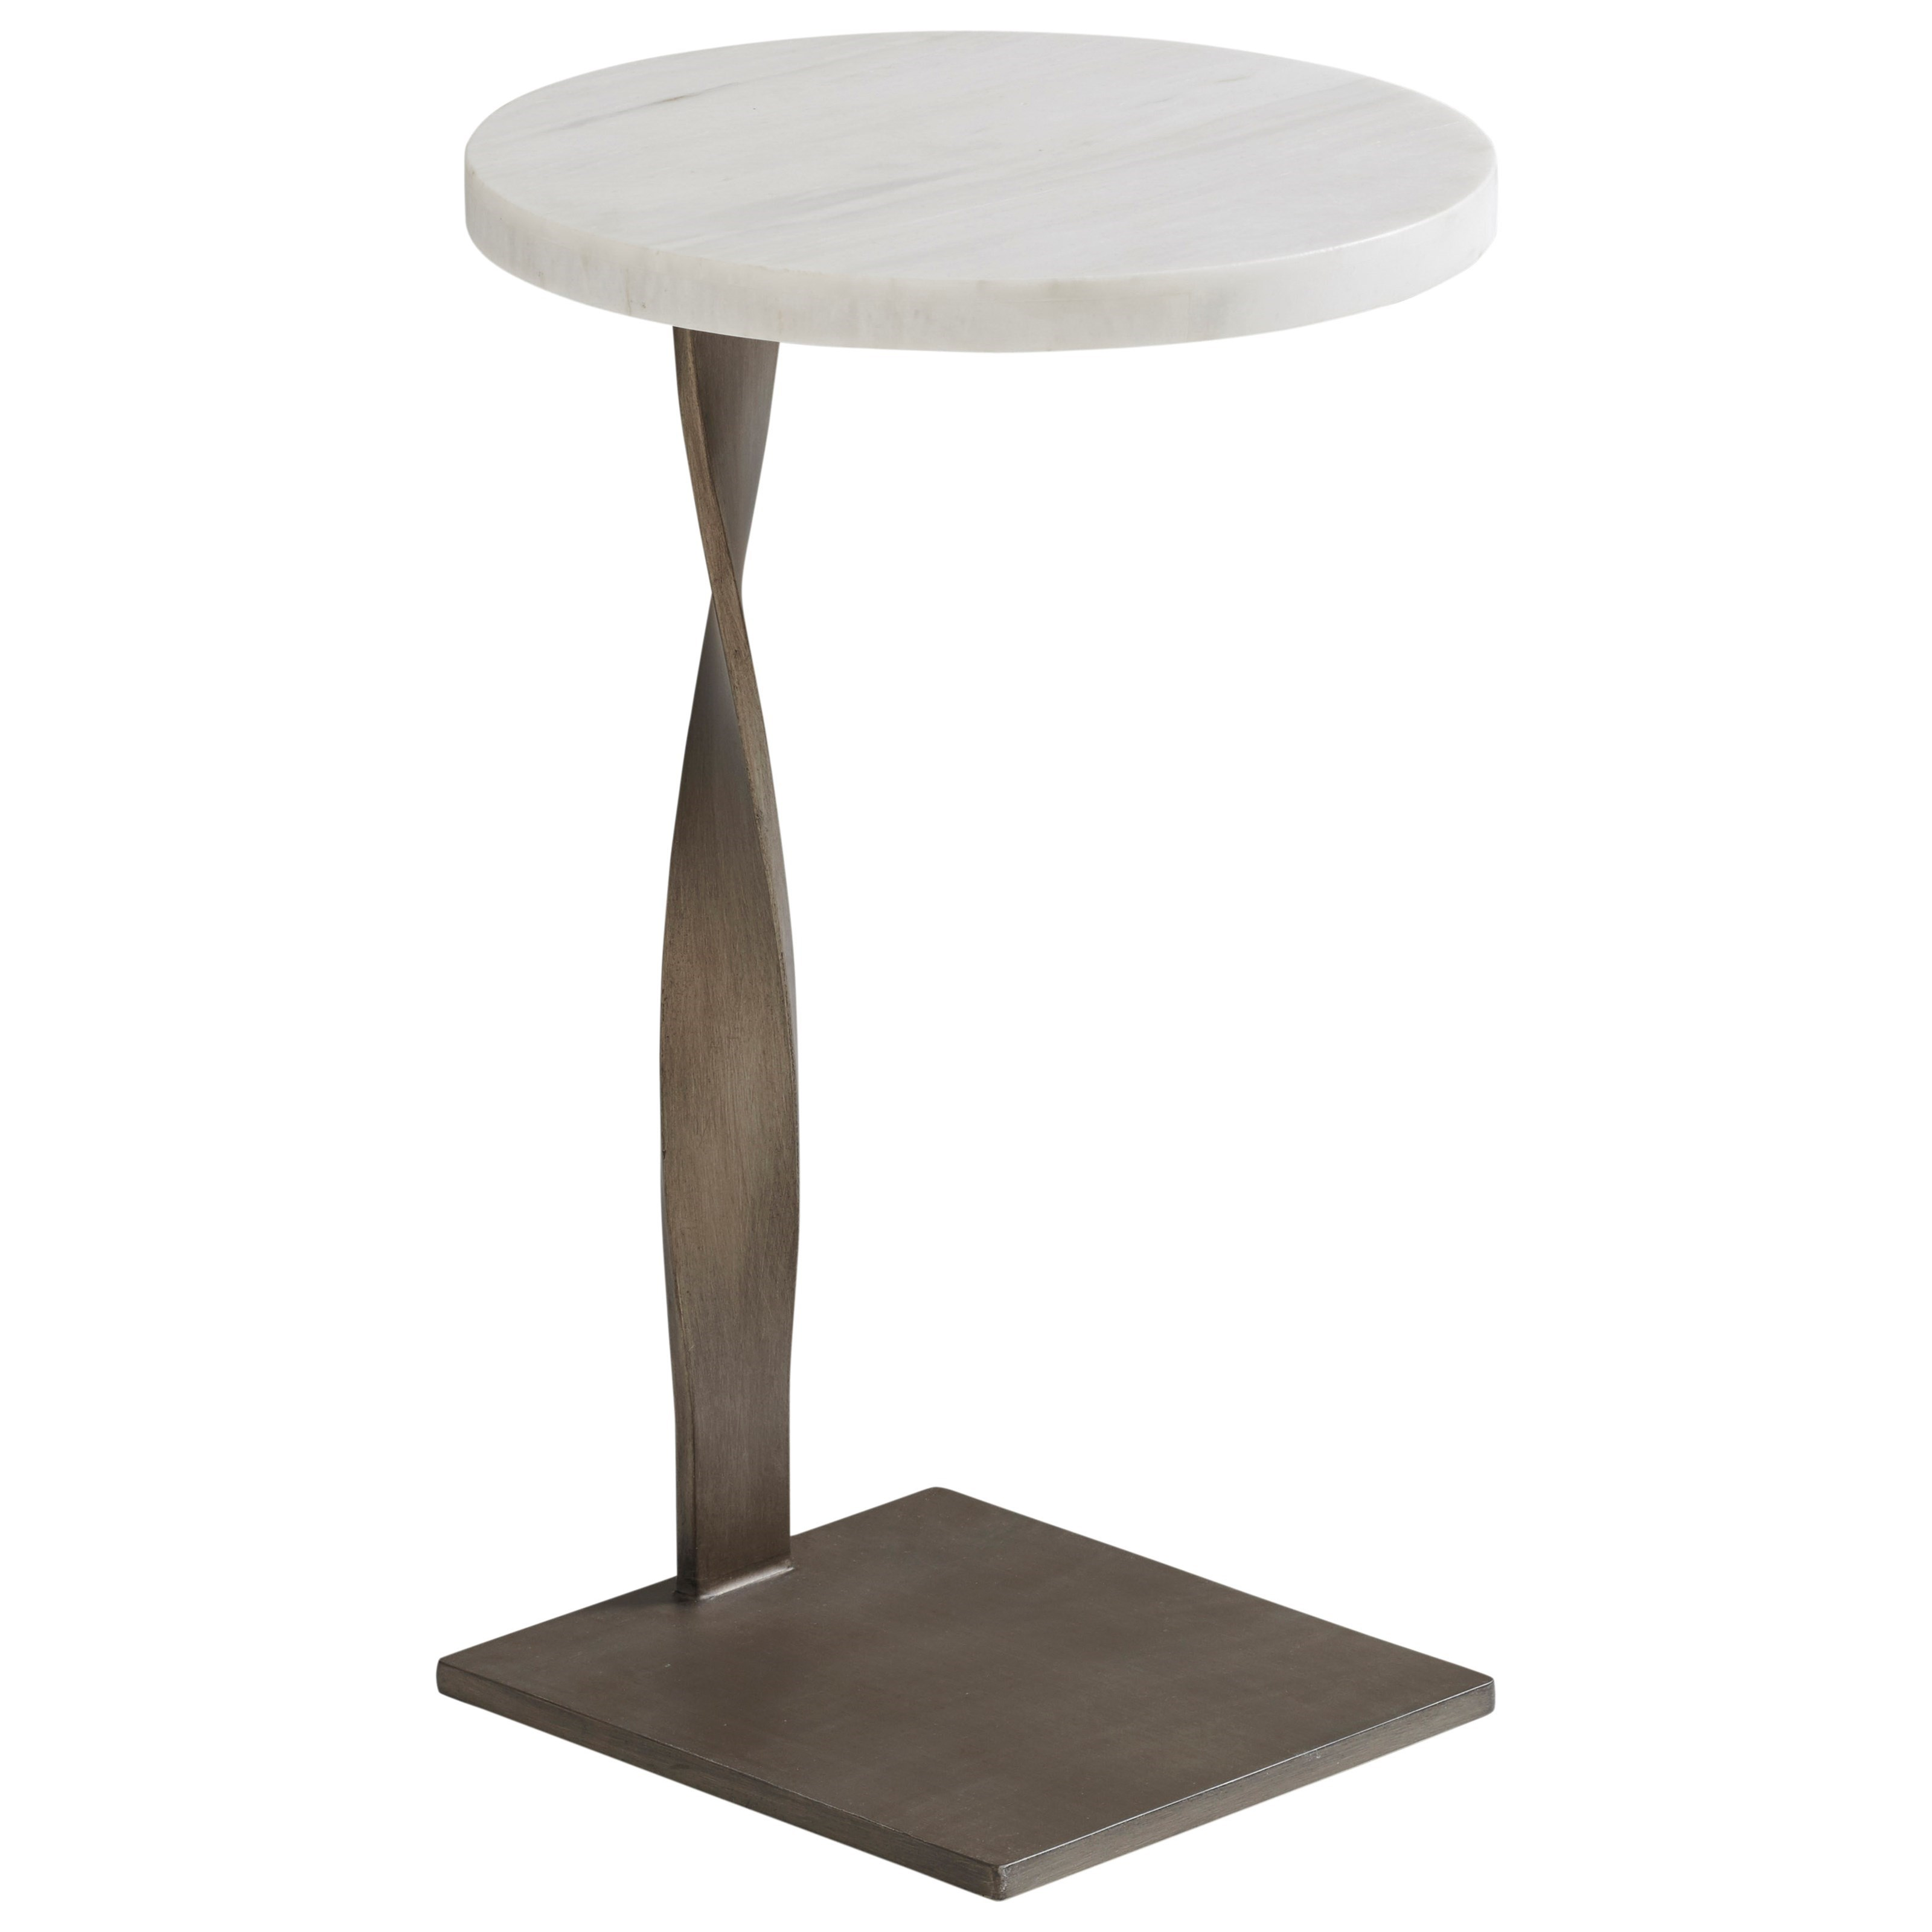 Ocean Breeze Rockville Round Martini Table by Tommy Bahama Home at Baer's Furniture